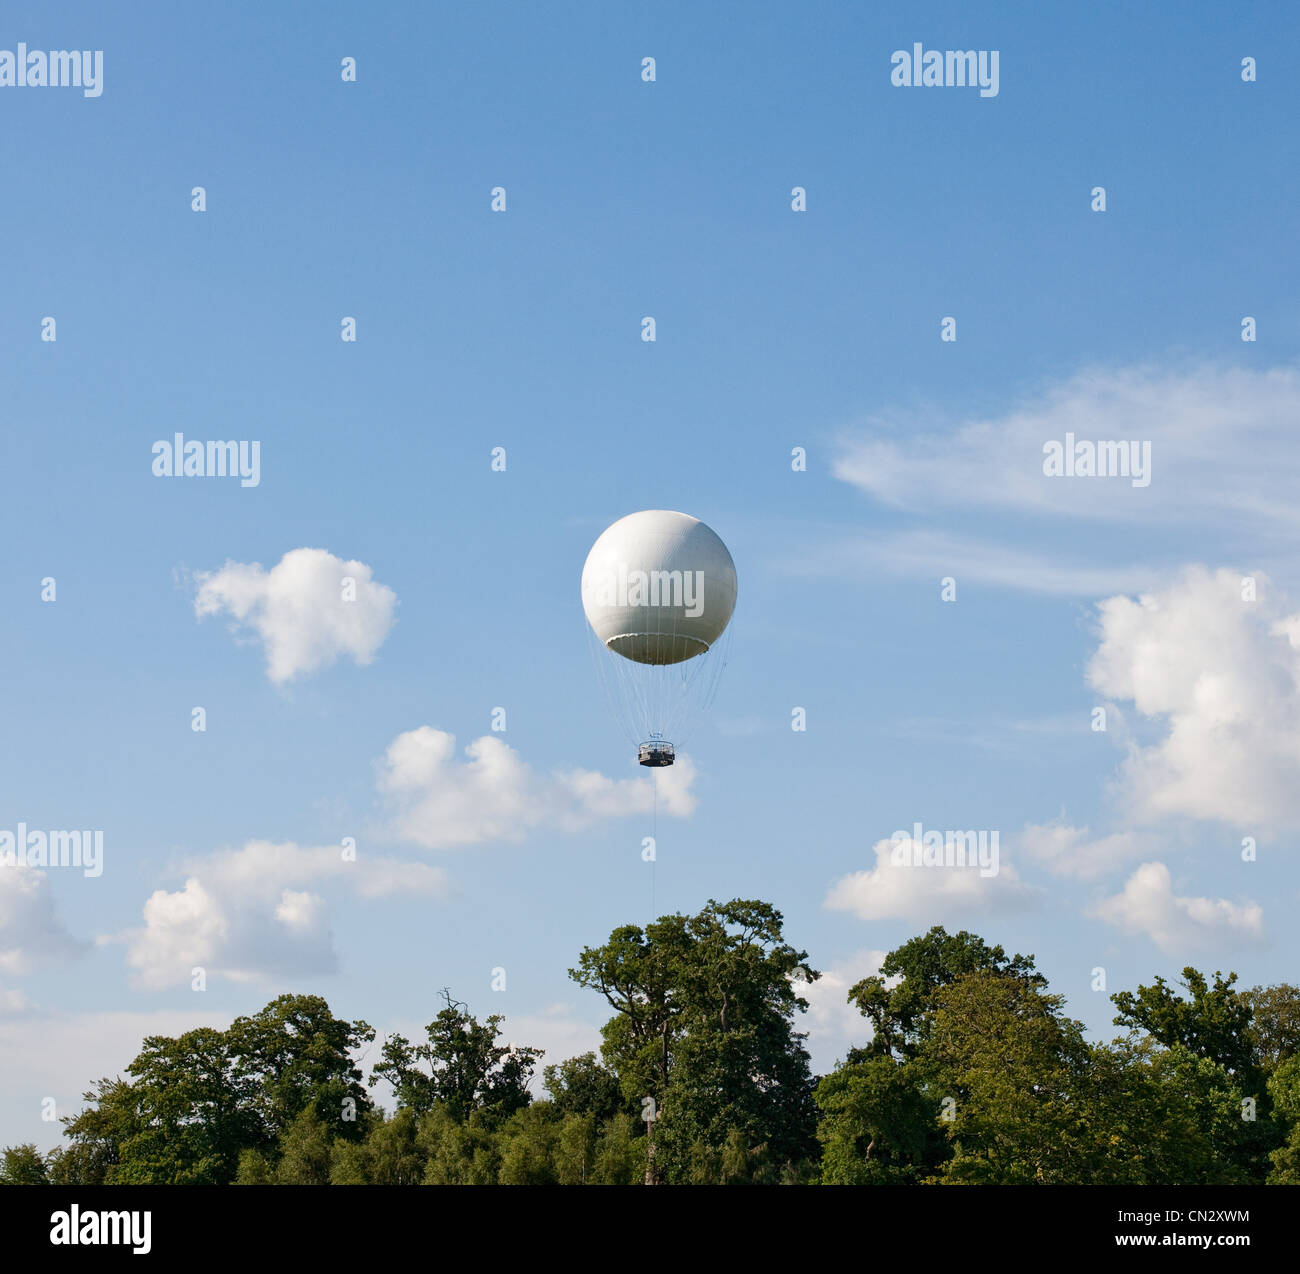 White hot air balloon above trees - Stock Image